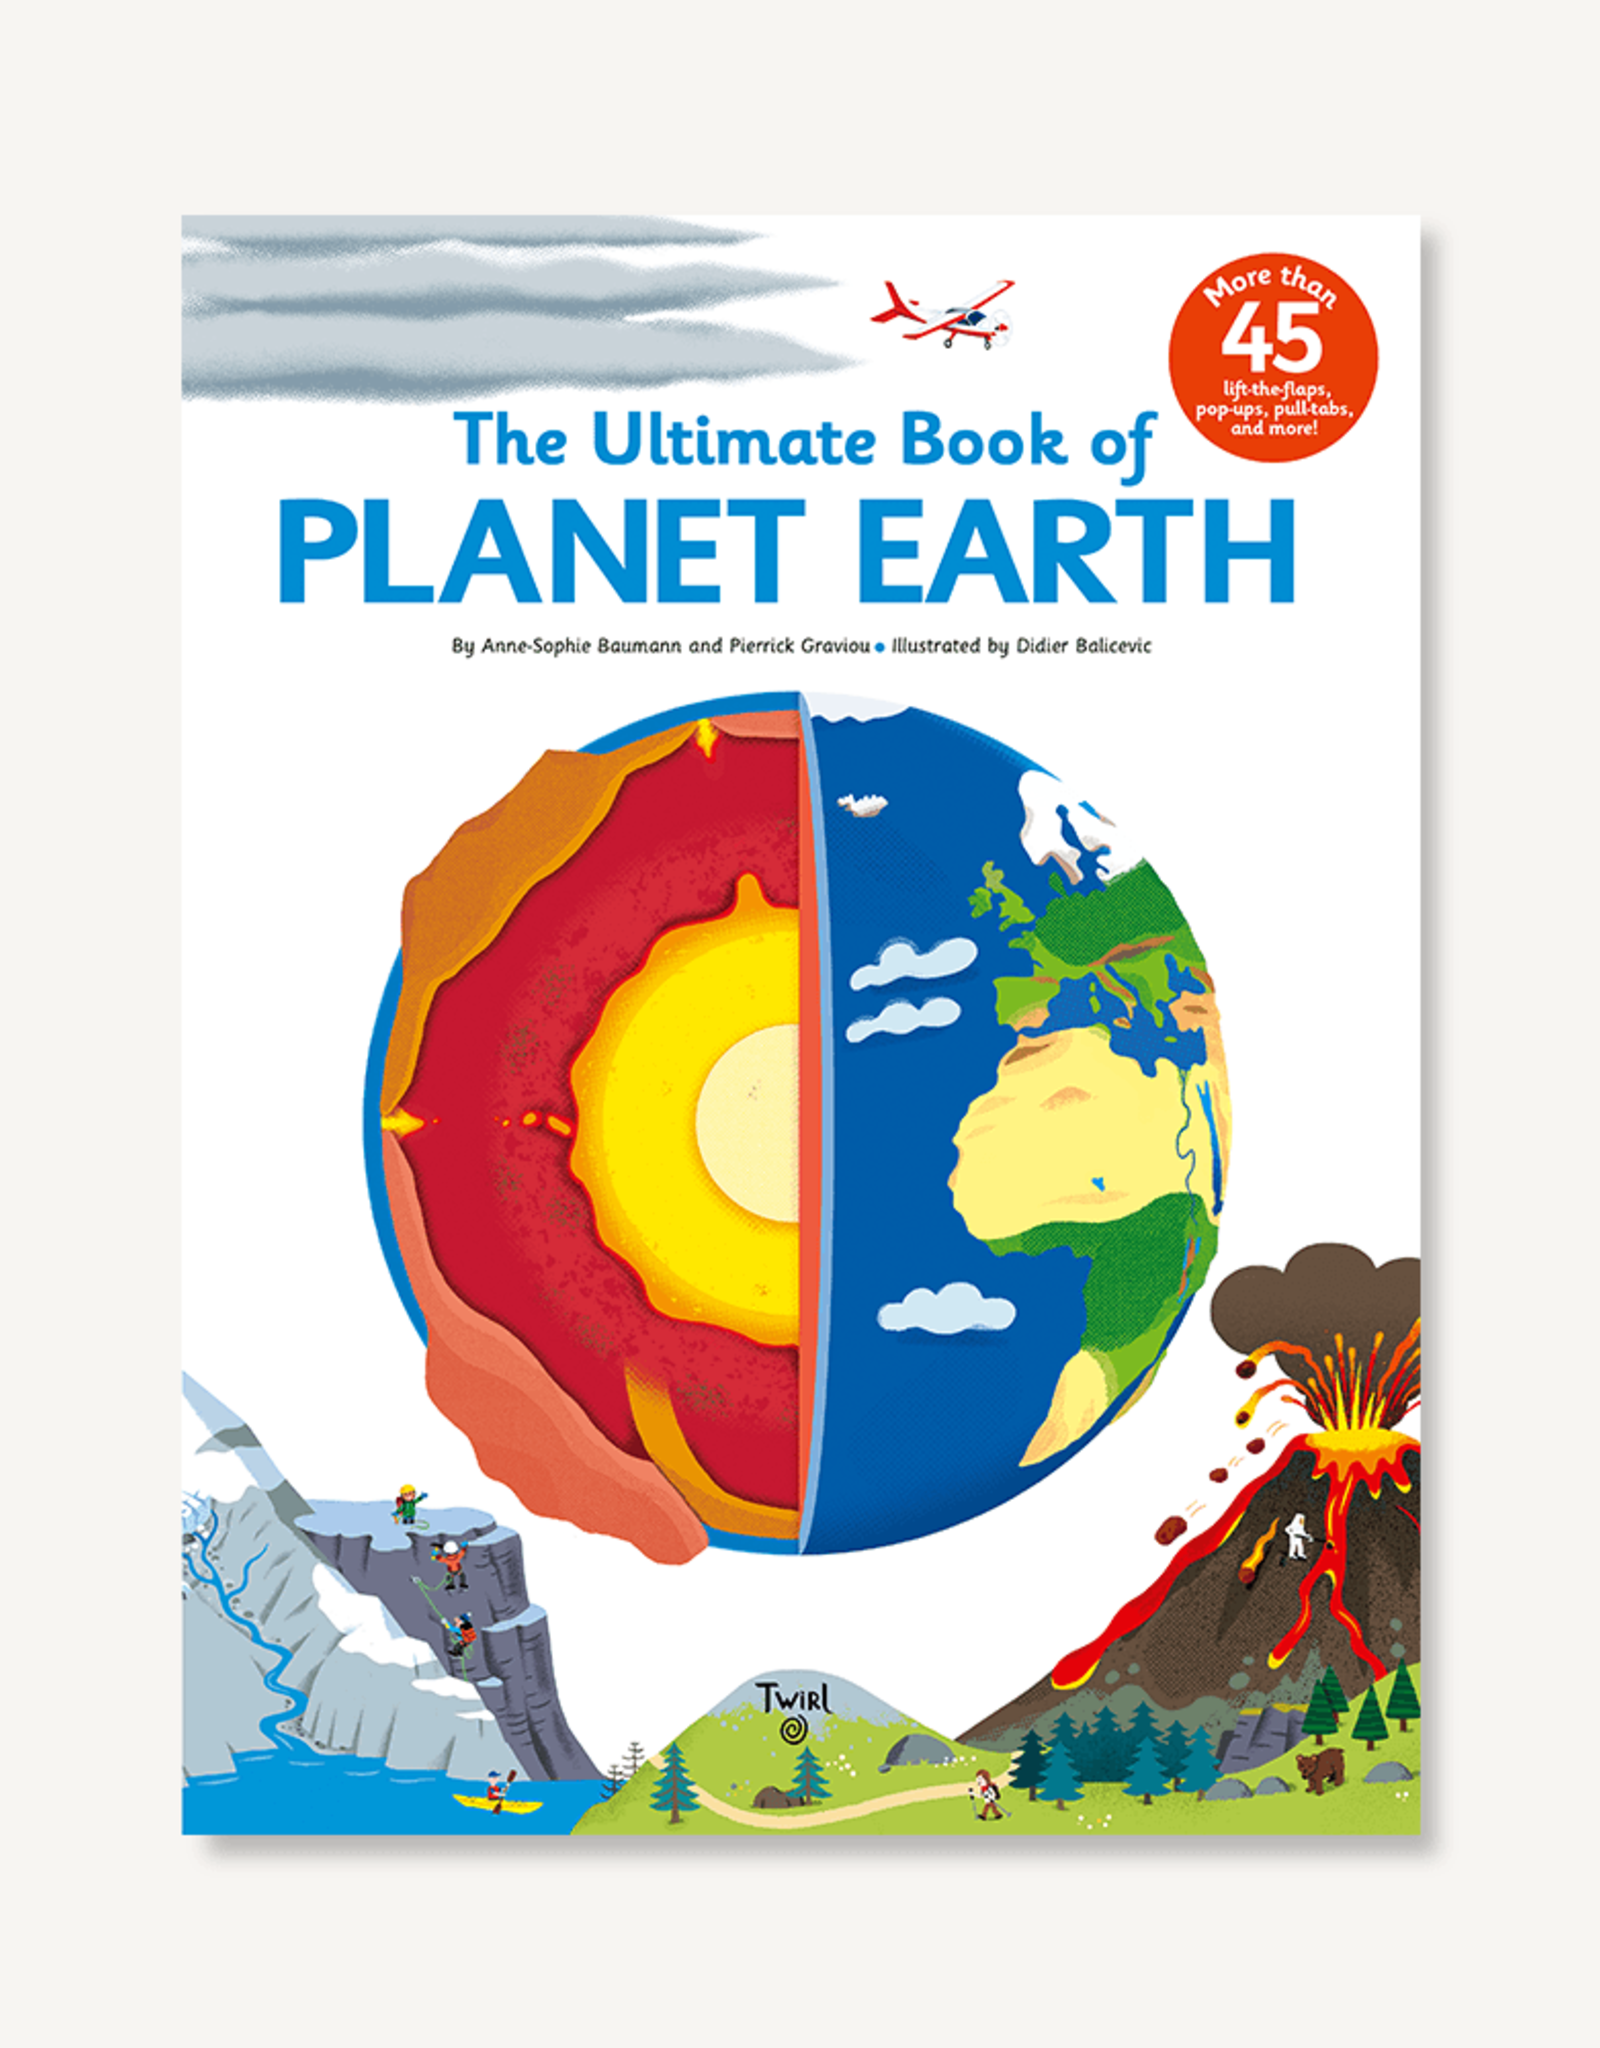 hatchette book group The Ultimate Book of Planet Earth